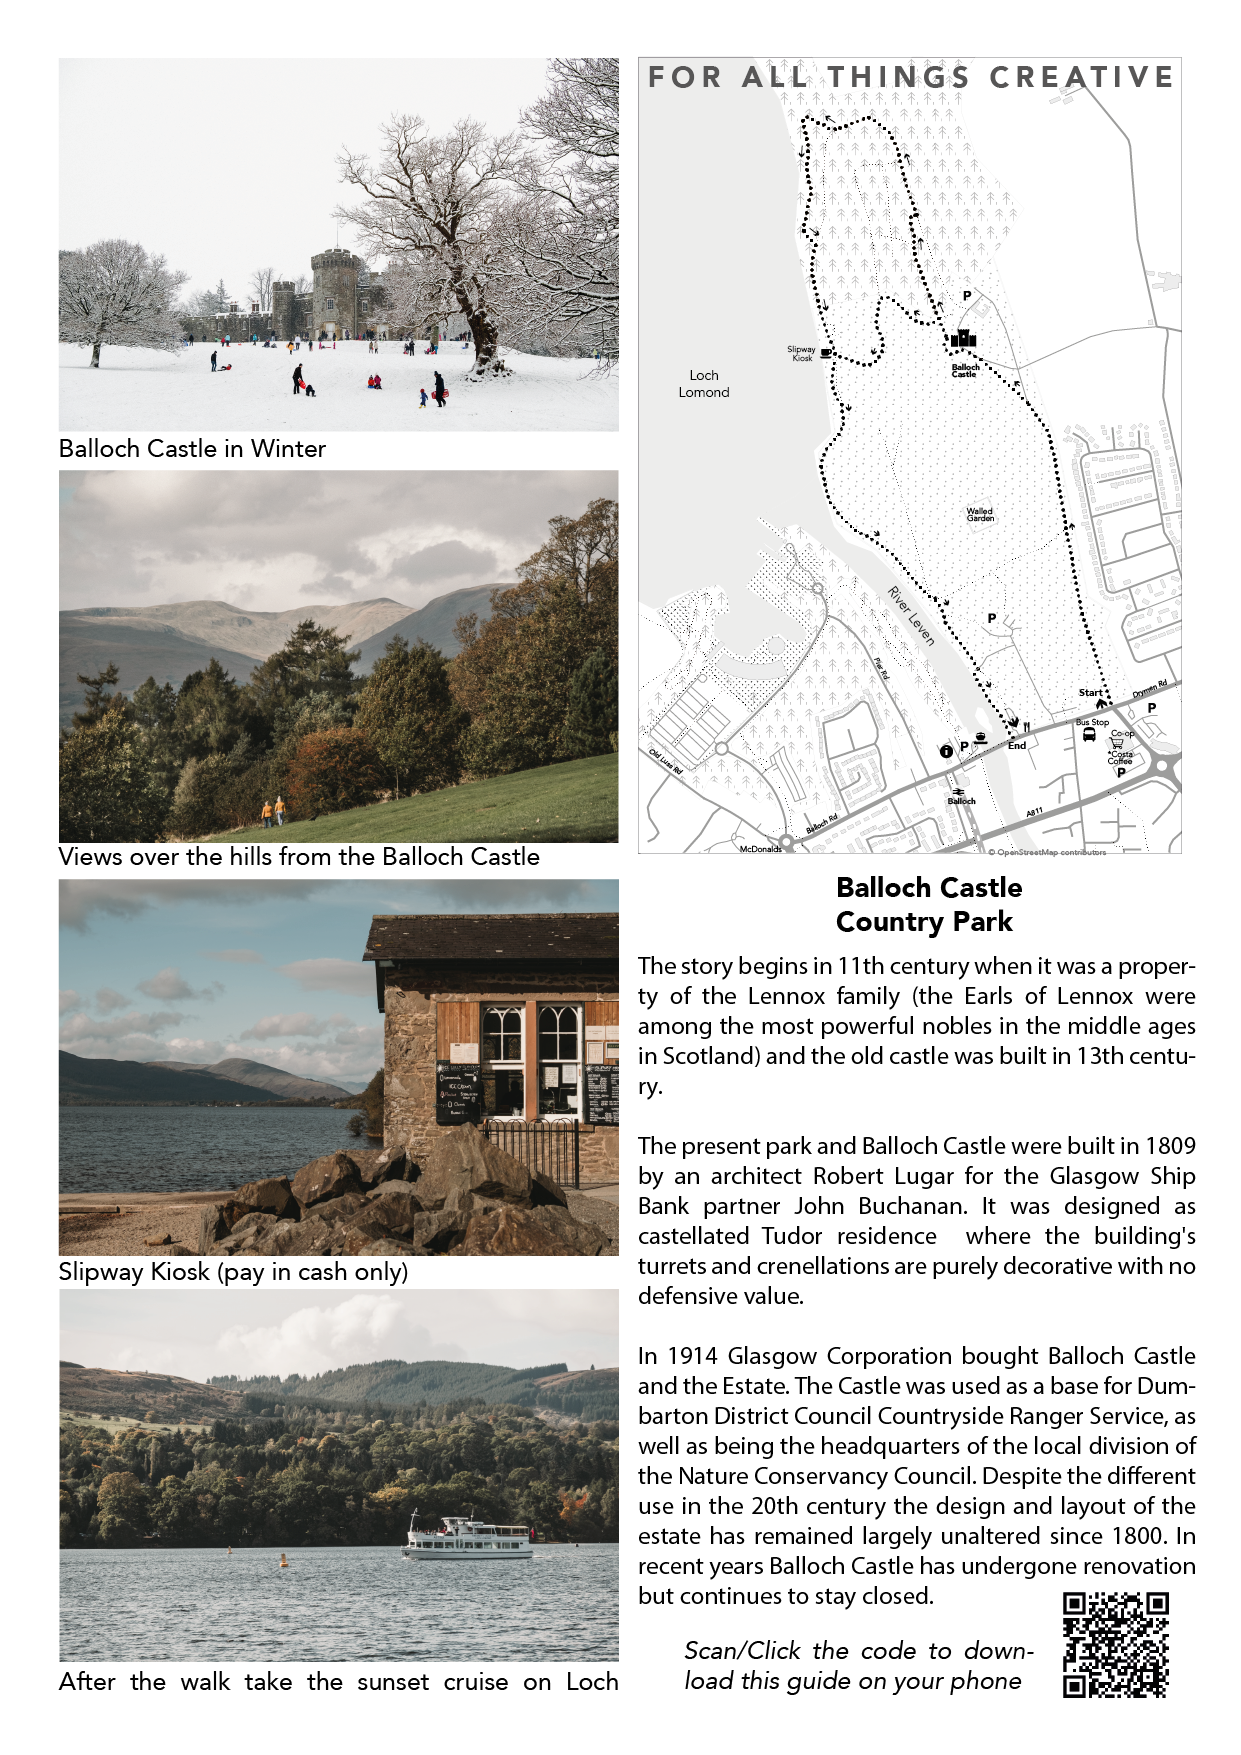 Balloch-Castle-Country-Park-02.png